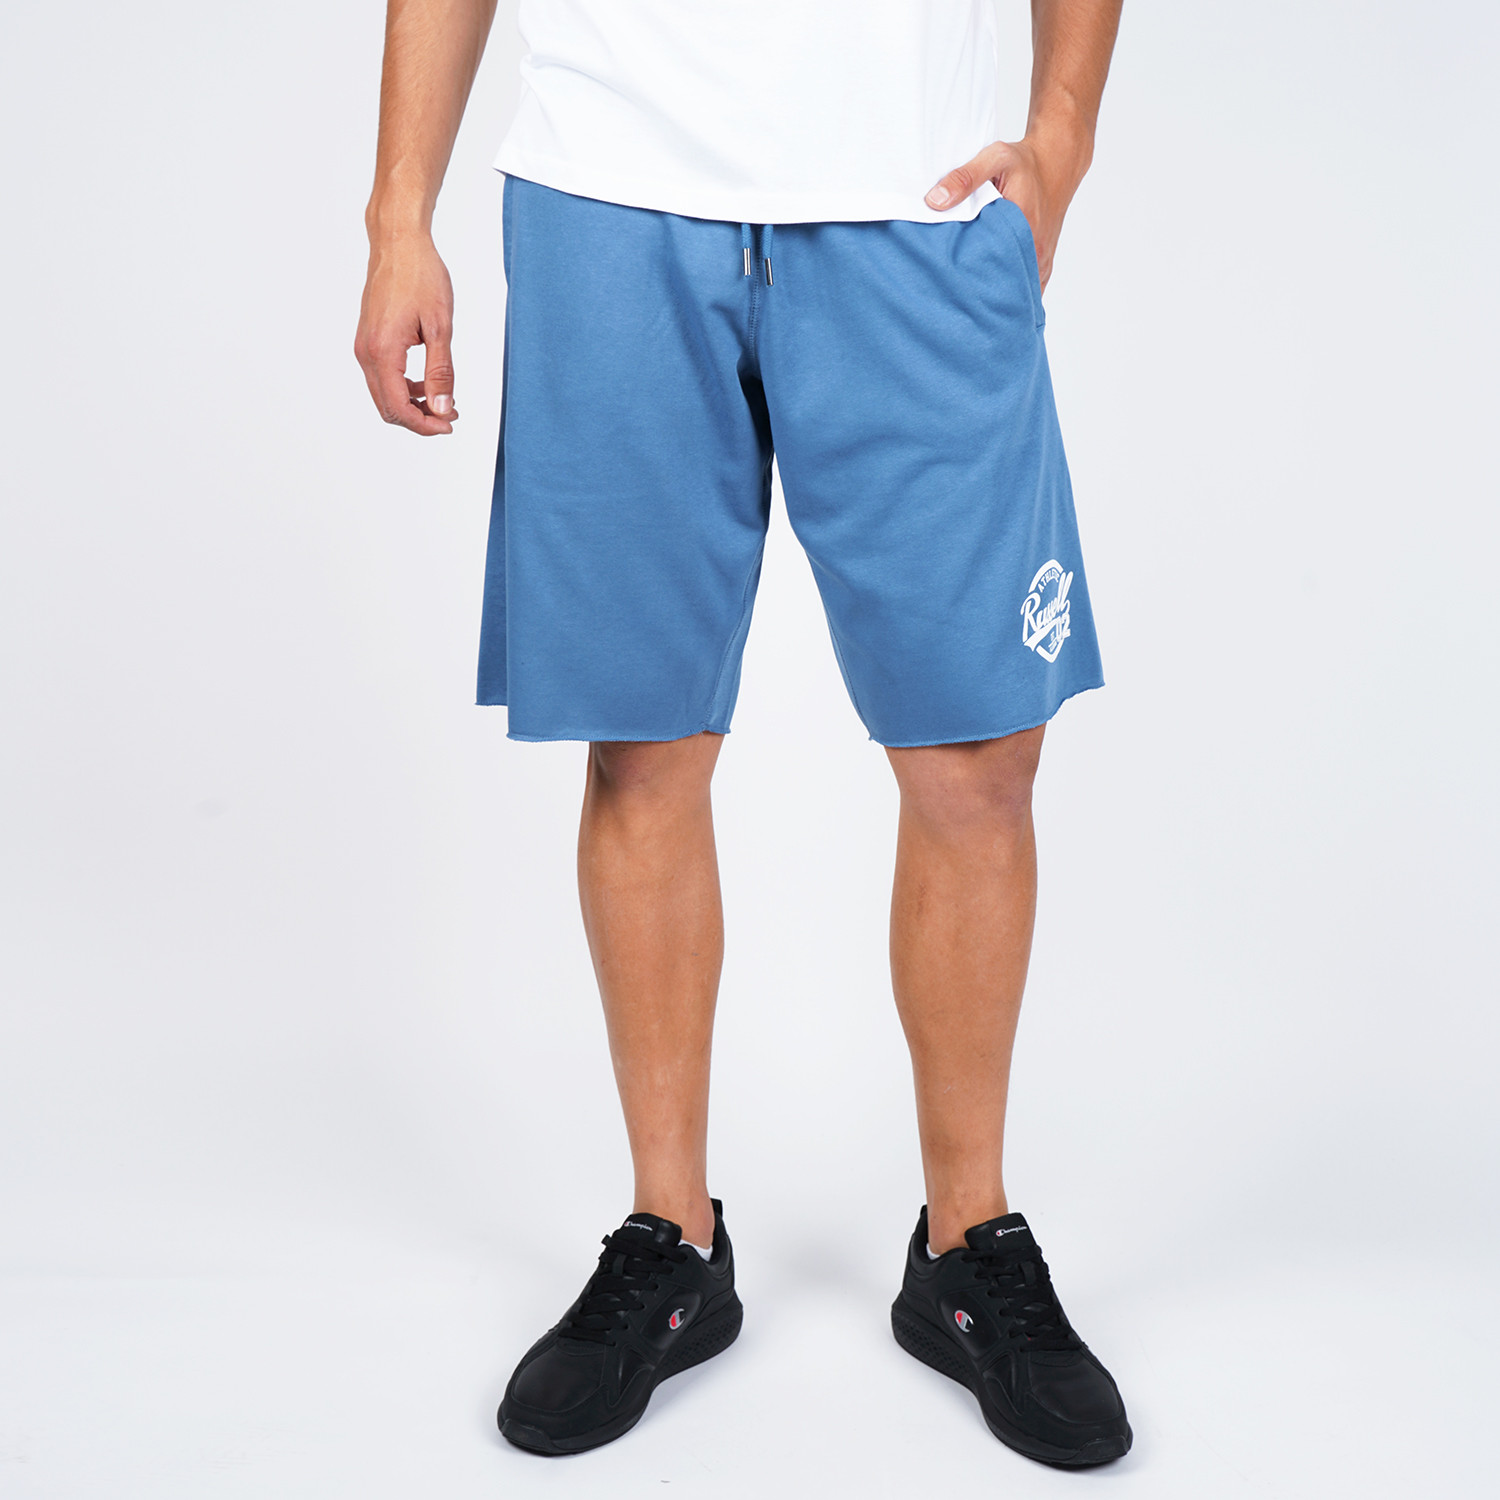 Russell Athletic Russell Athletic Collegiate Raw Edge Men's Shorts (9000051637_32898)